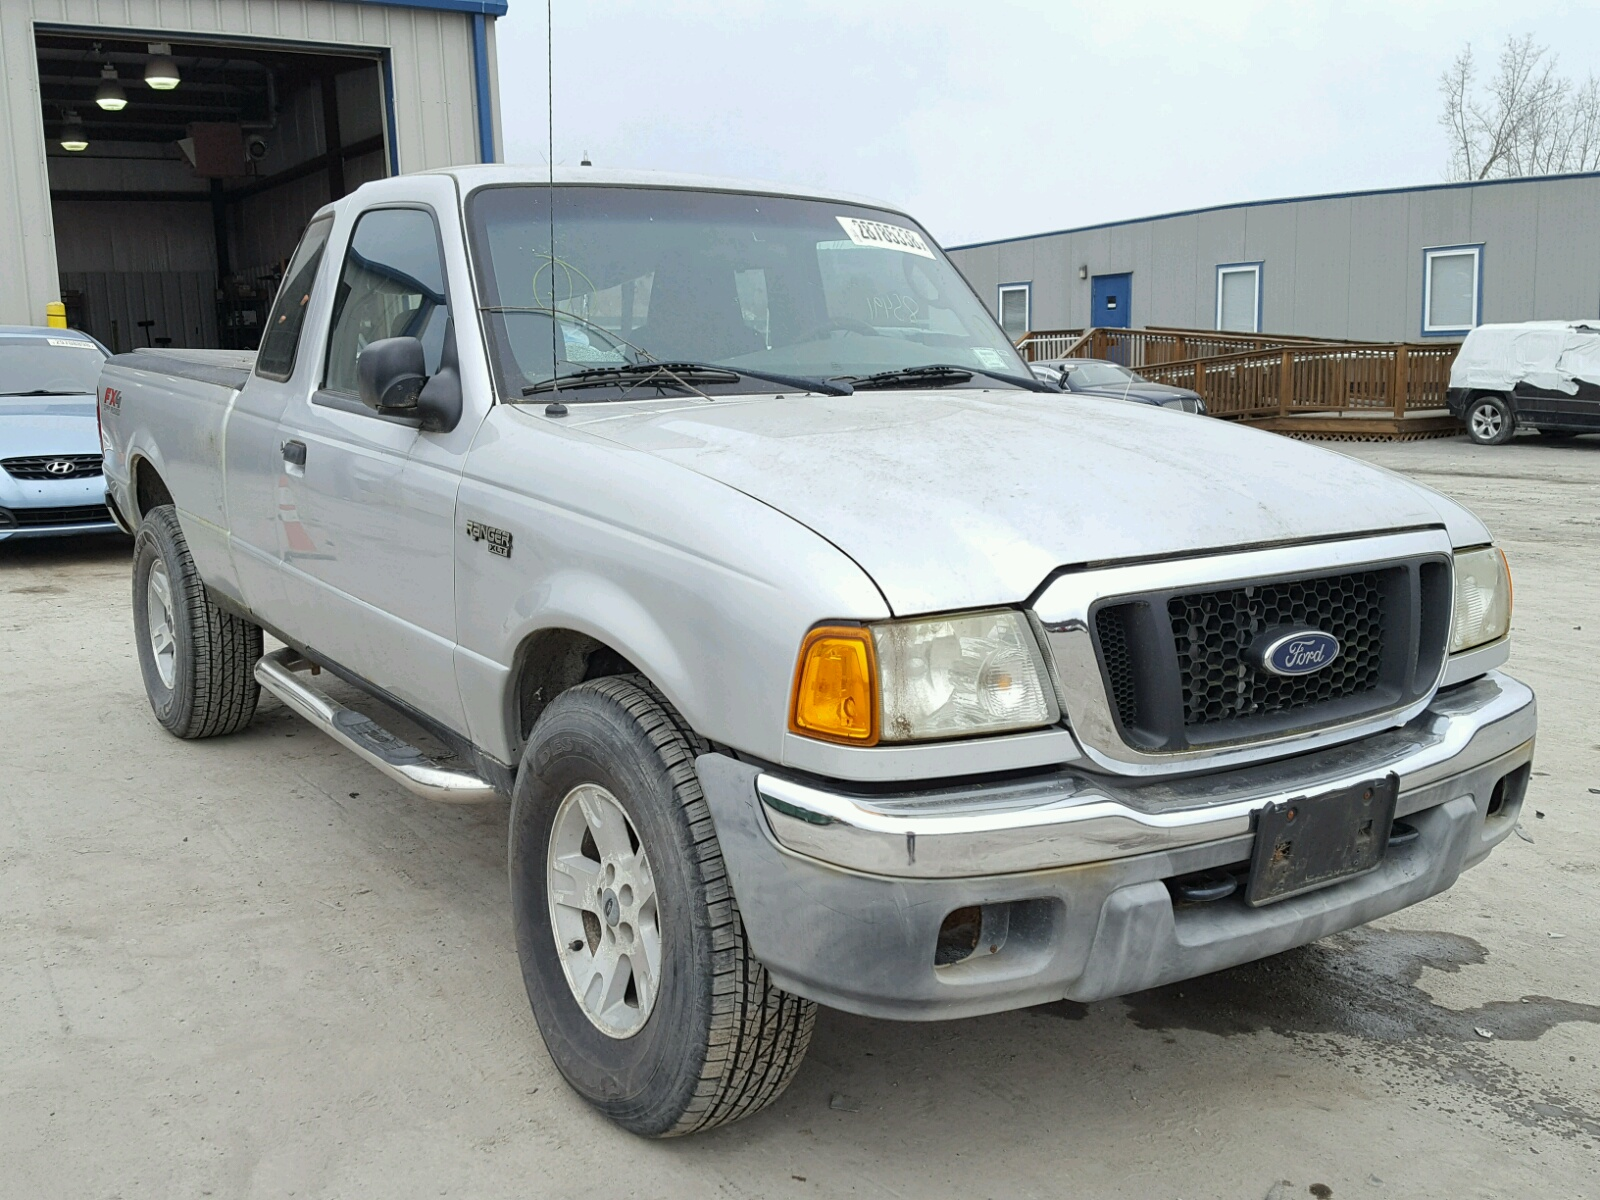 2018 Ford Ranger Scranton >> 1ftyr15e04ta15976 2004 Silver Ford Ranger Sup On Sale In Pa